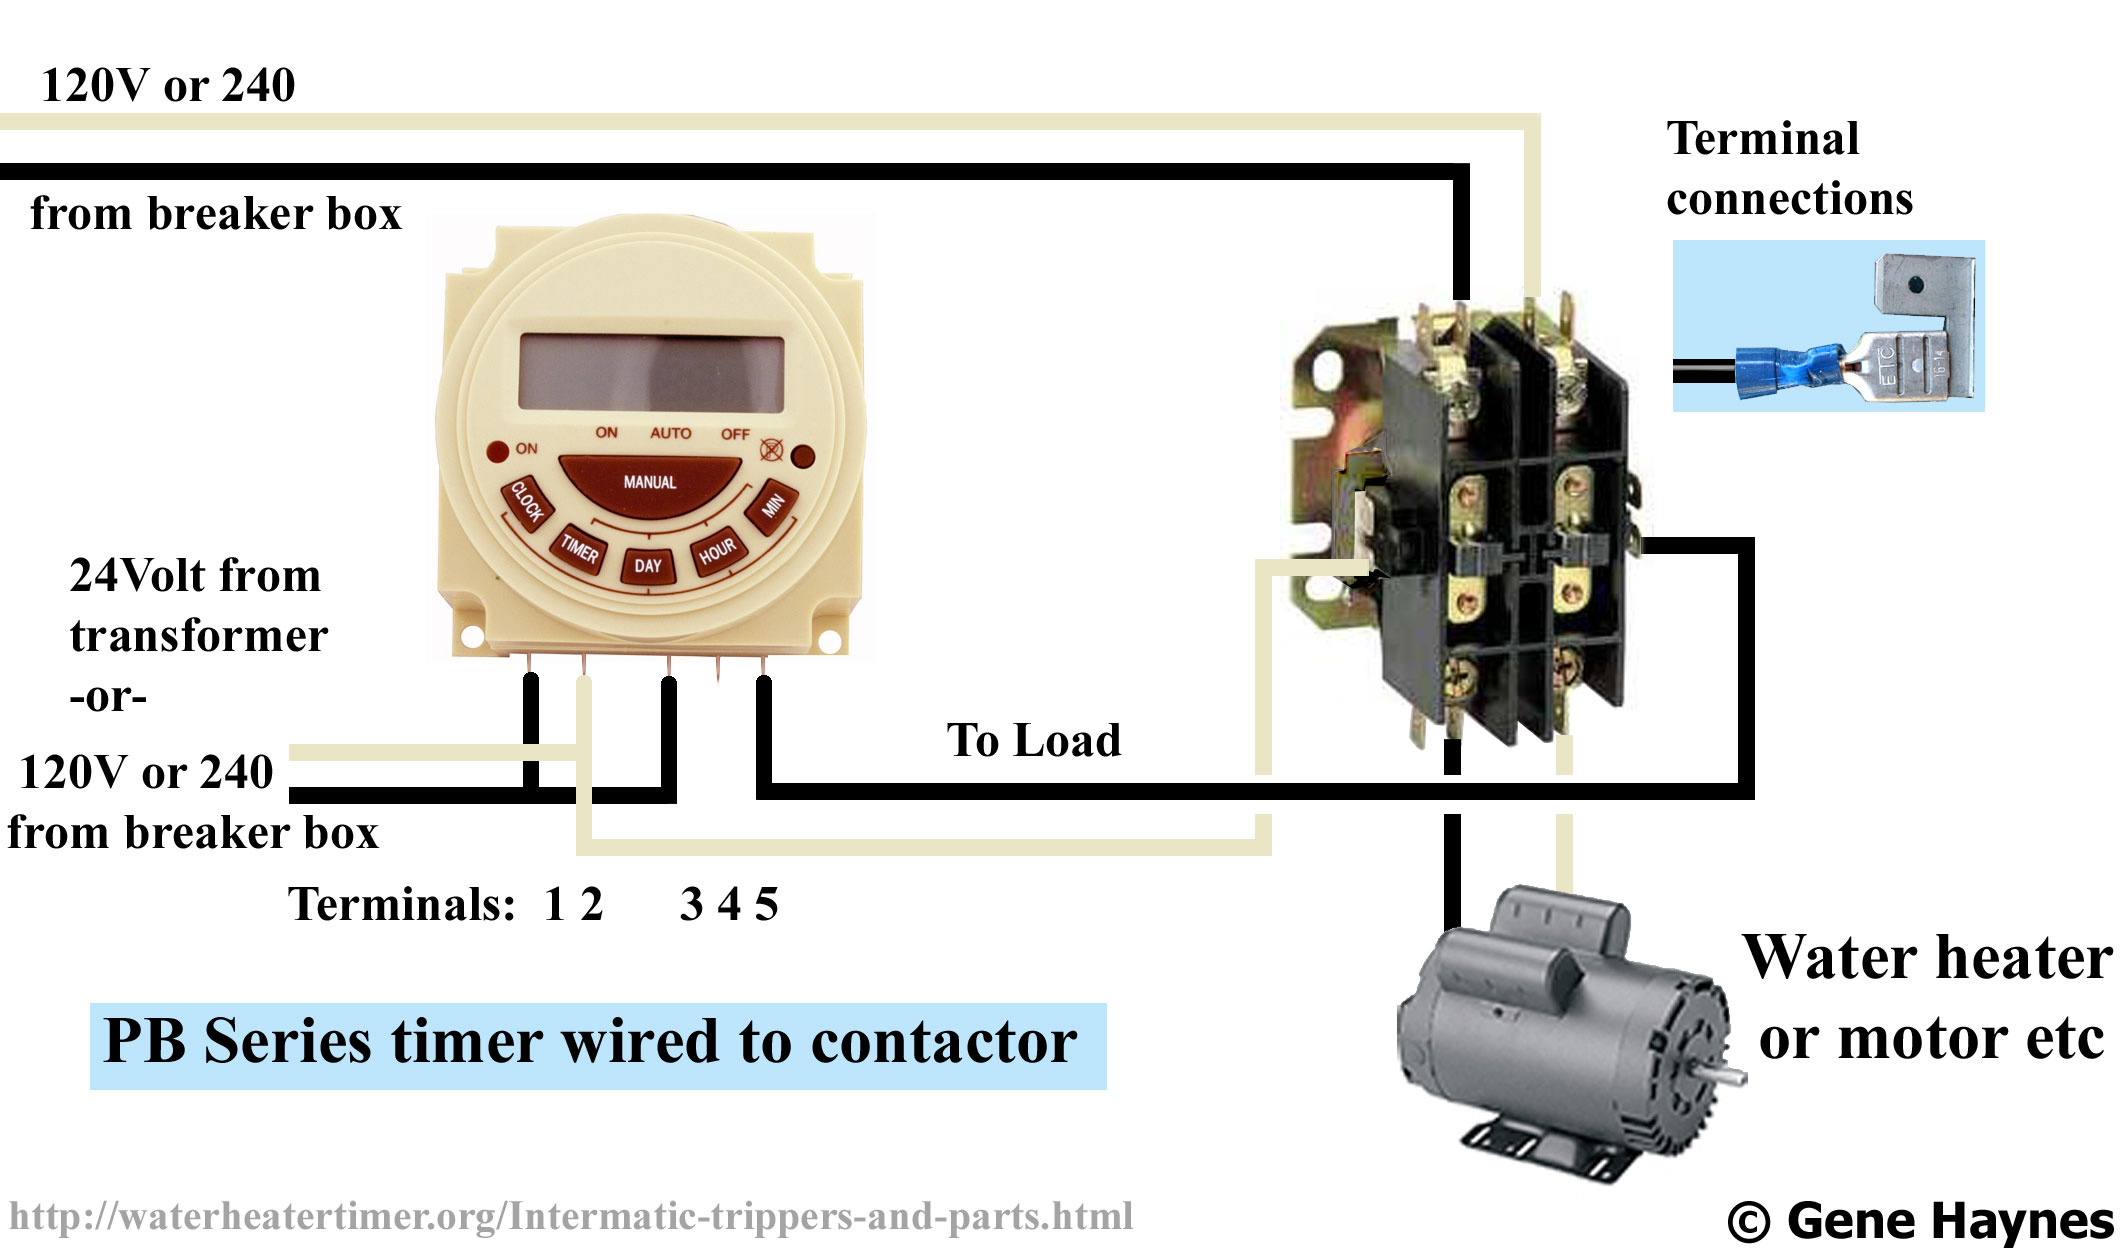 PB 300 series timer wiring motor large contactors no nc contactor wiring diagram at readyjetset.co